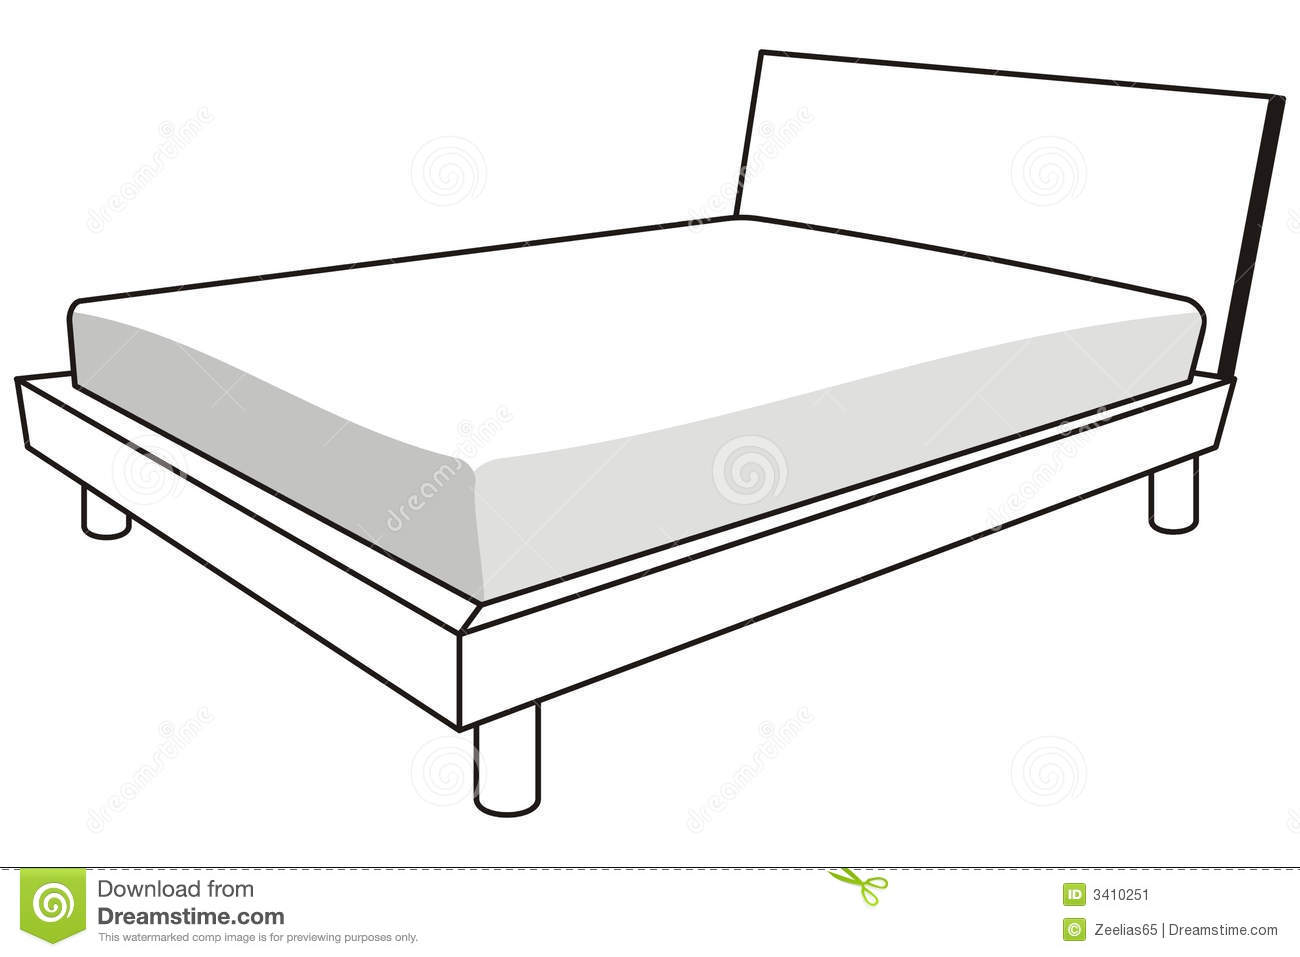 101+ Bed Clipart Black And White.